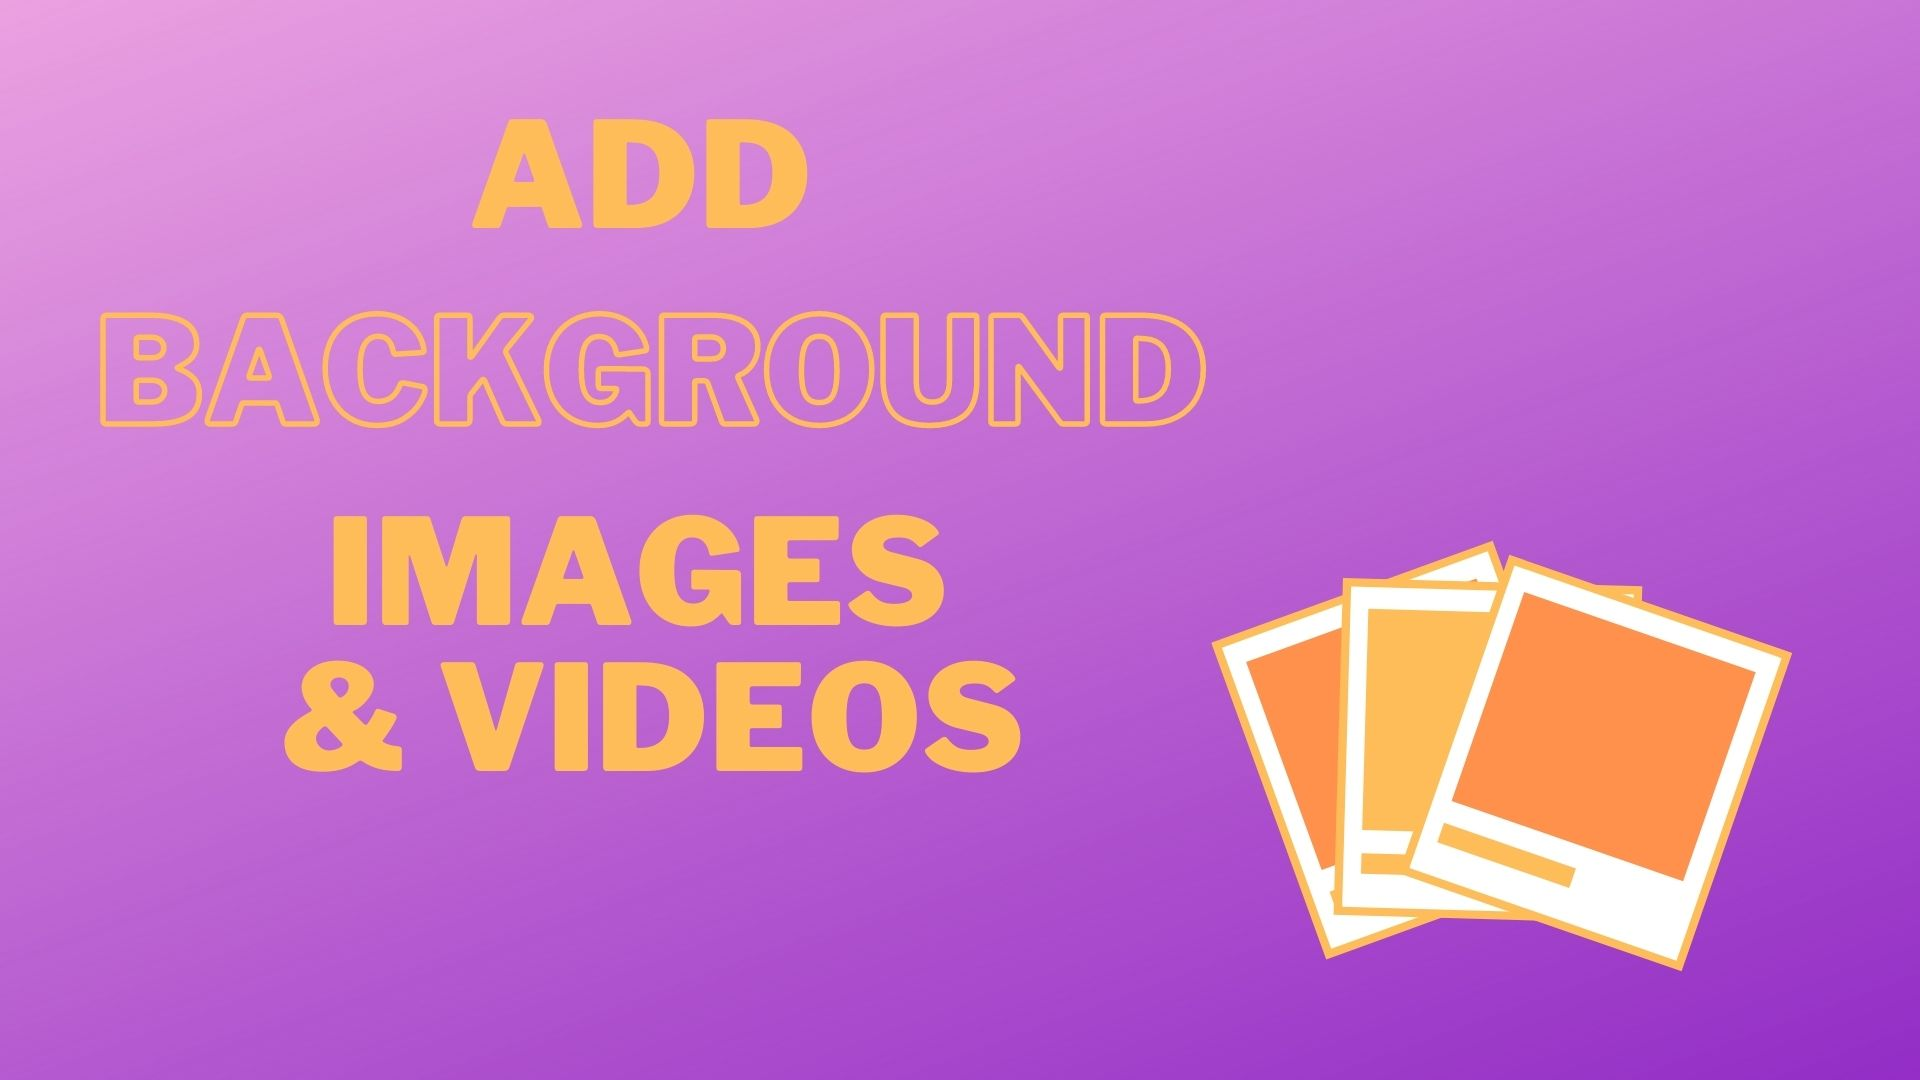 How to Add Background Images and Videos